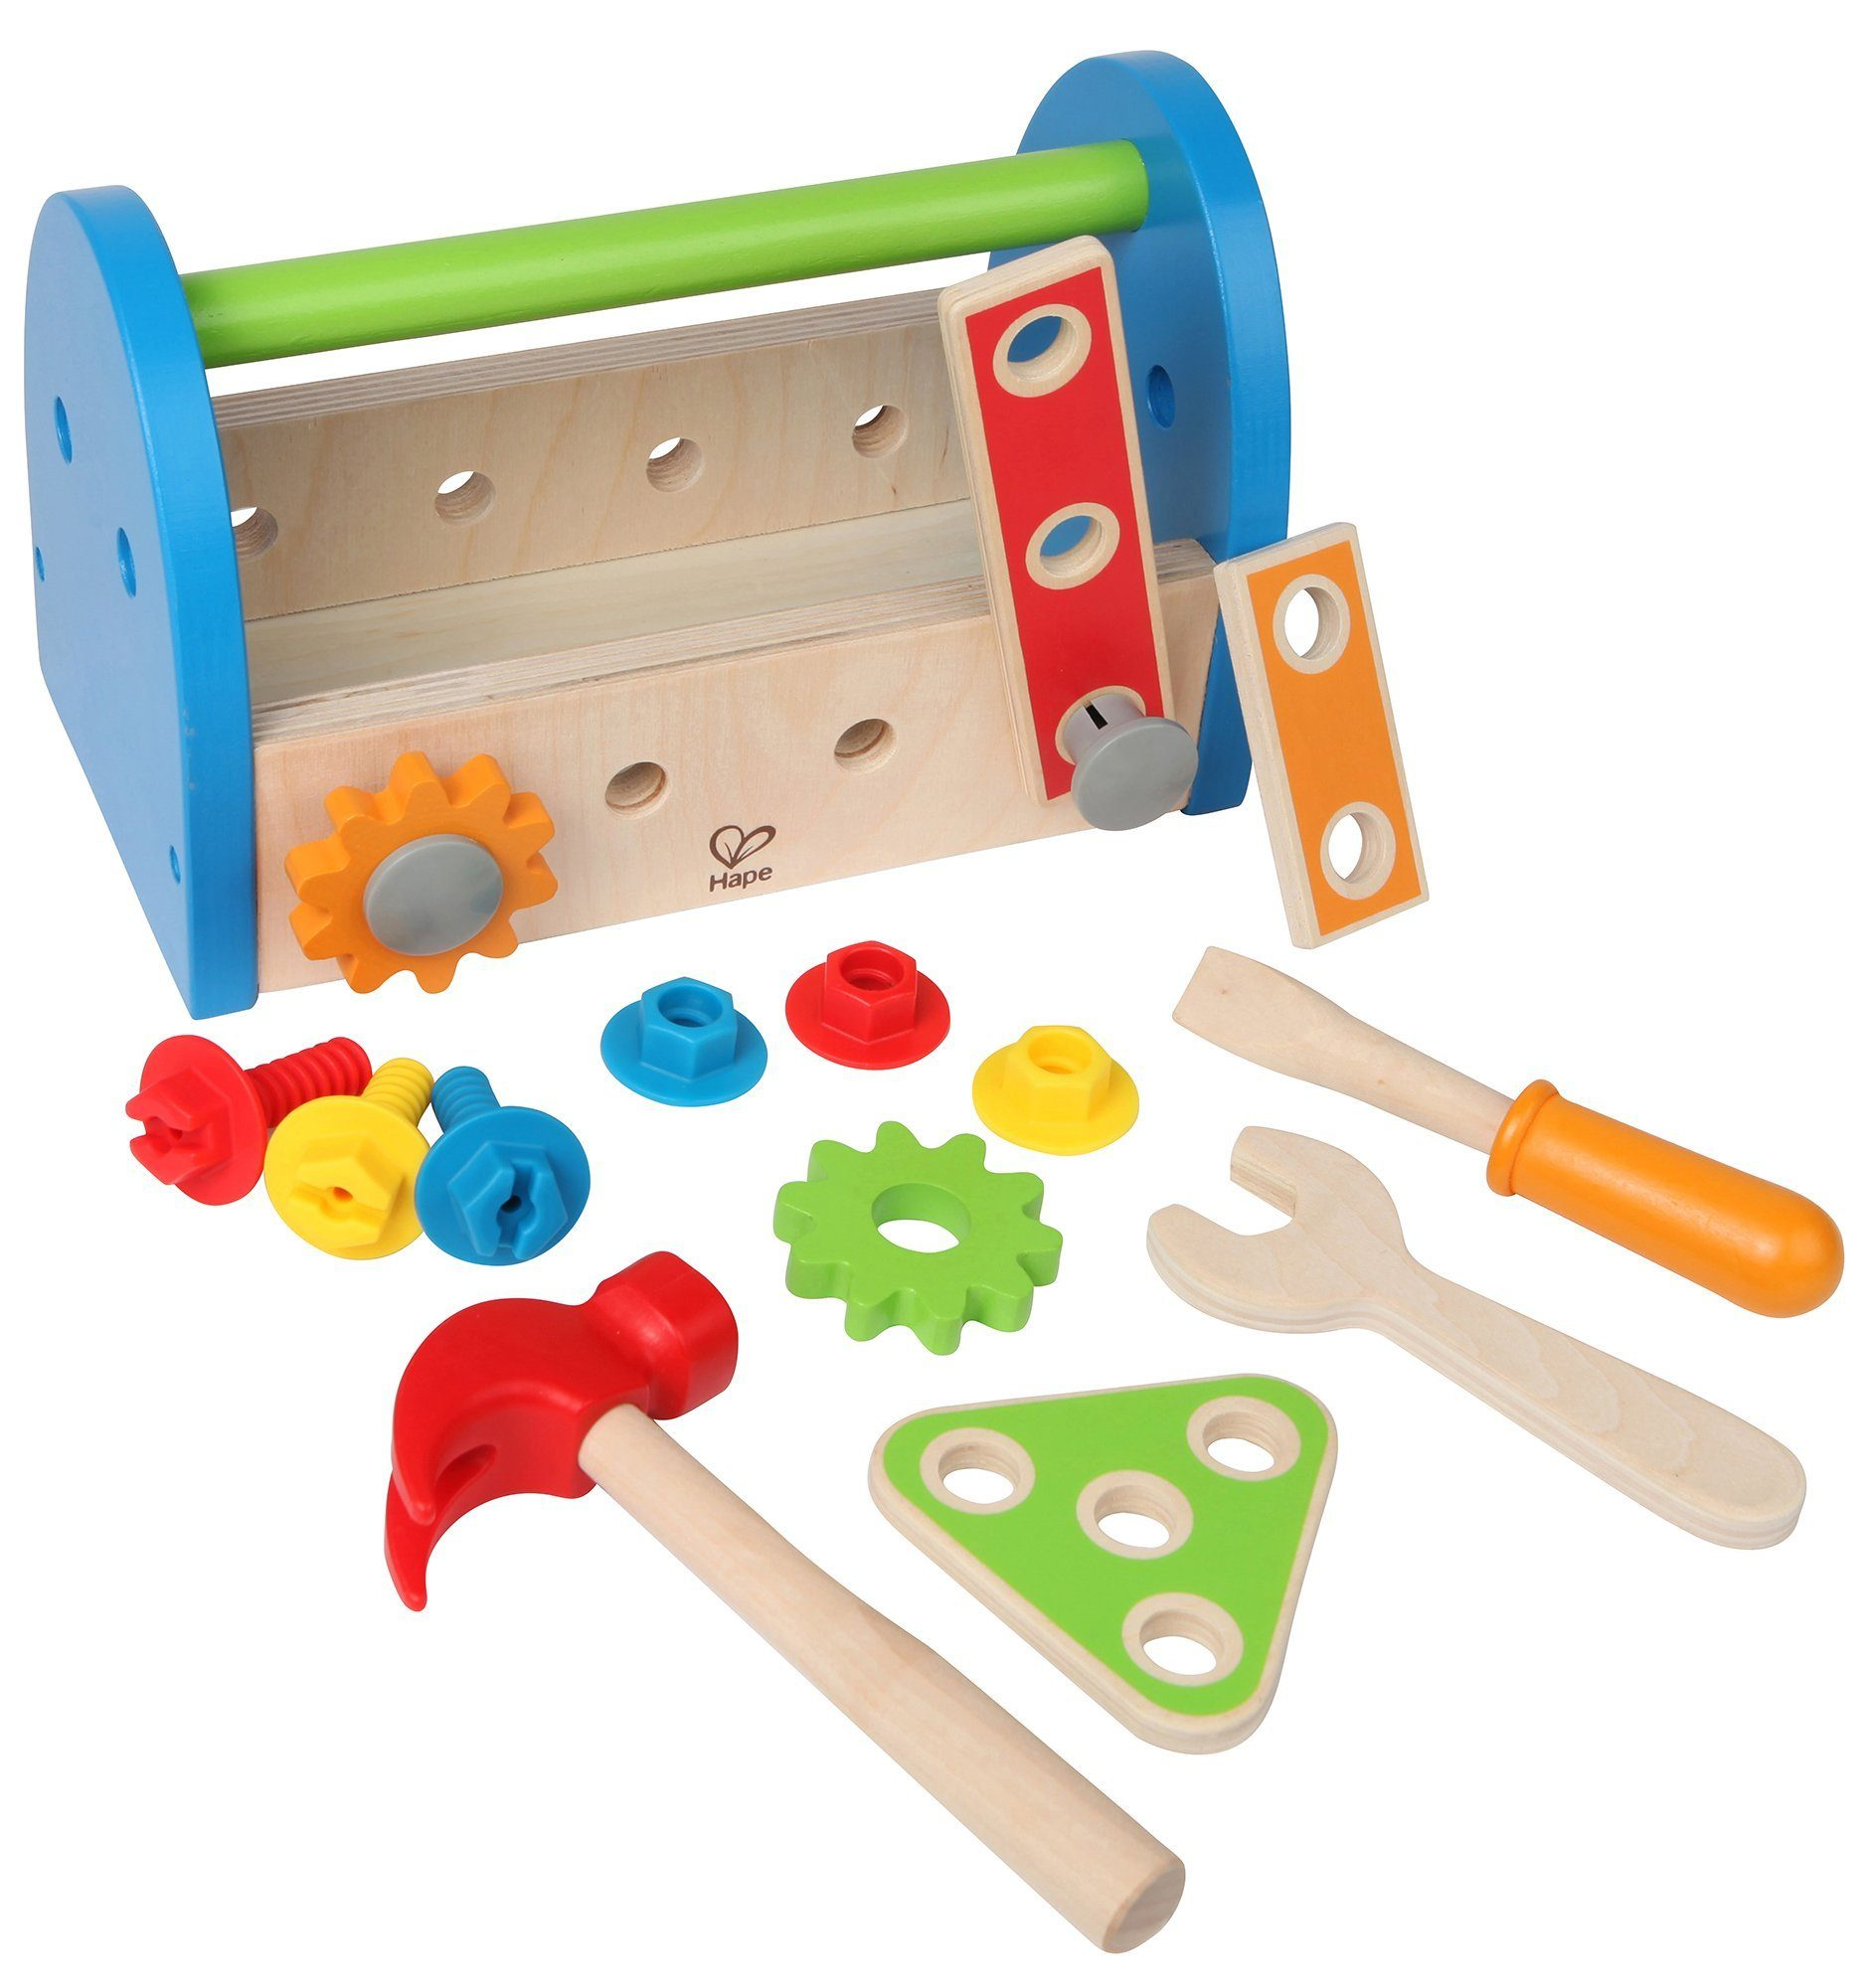 Hape Fix It Kid's Wooden Tool Box and Accessory Play Set - WoodenToys.com